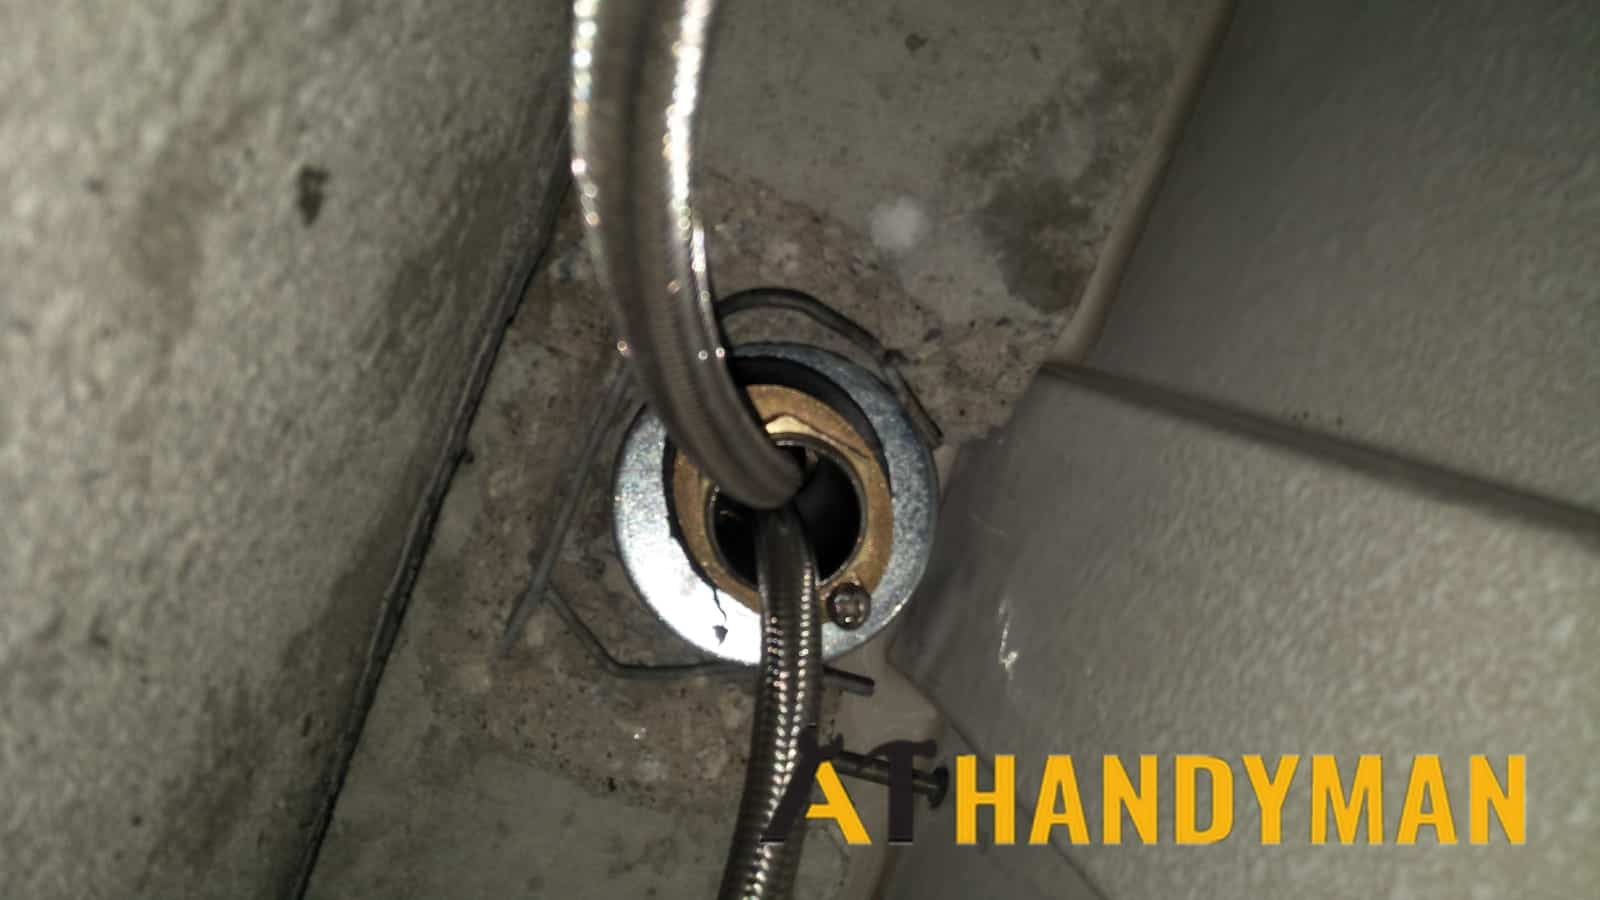 loose-kitchen-sink-tap-replacement-singapore-condo-harbourfront-5_wm